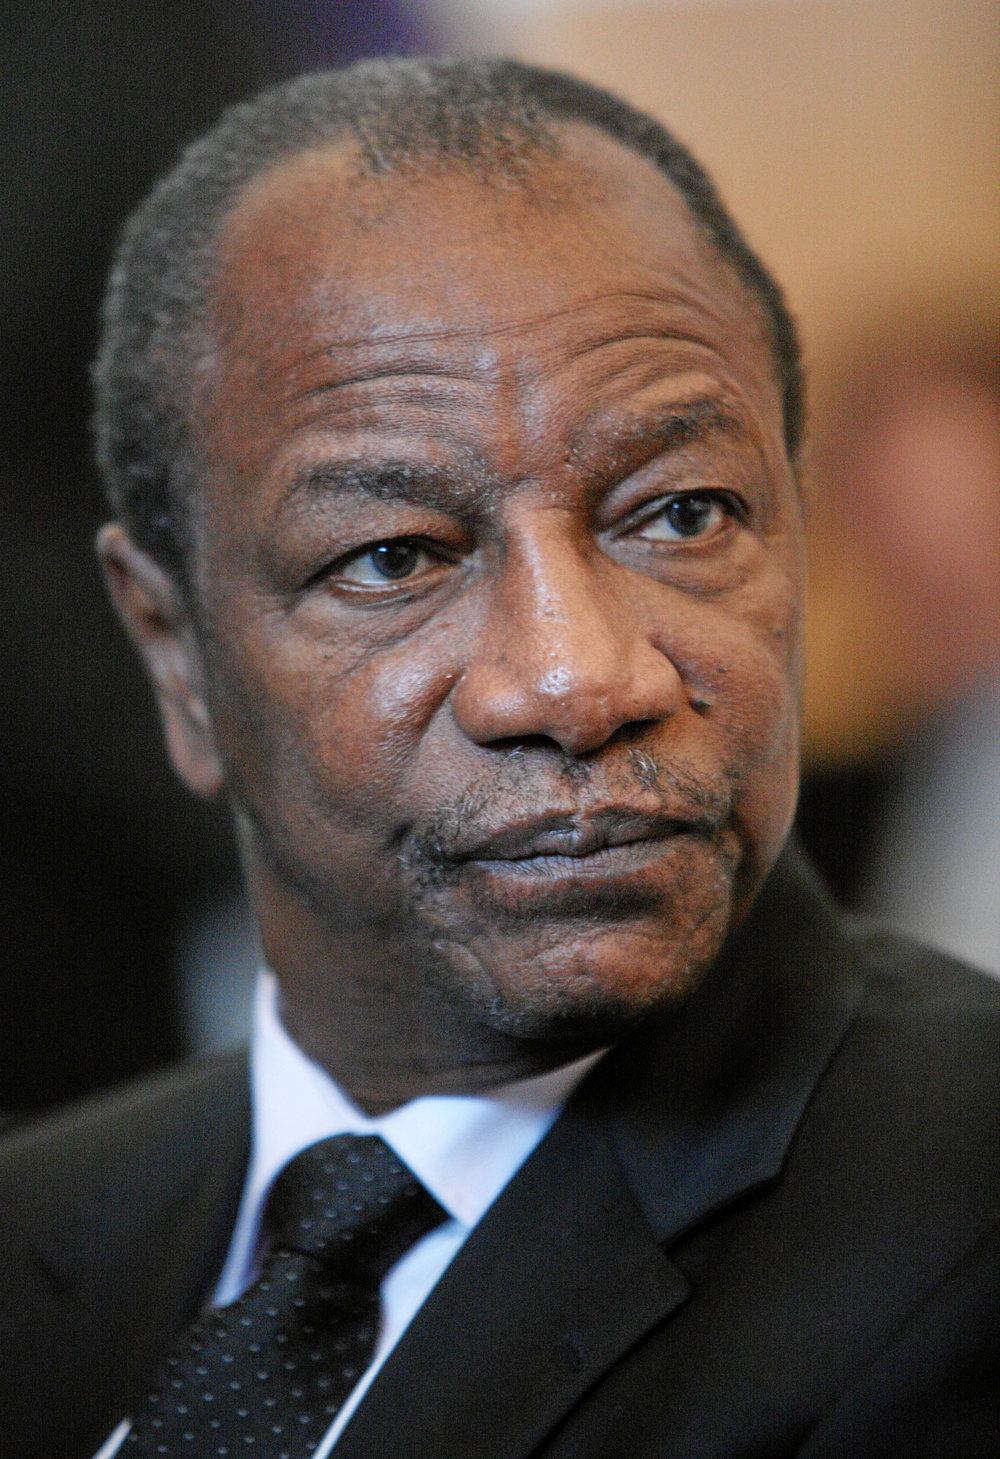 The President of Guinea Alpha Conde. Credit: The World Economic Forum via Wikimedia Commons.